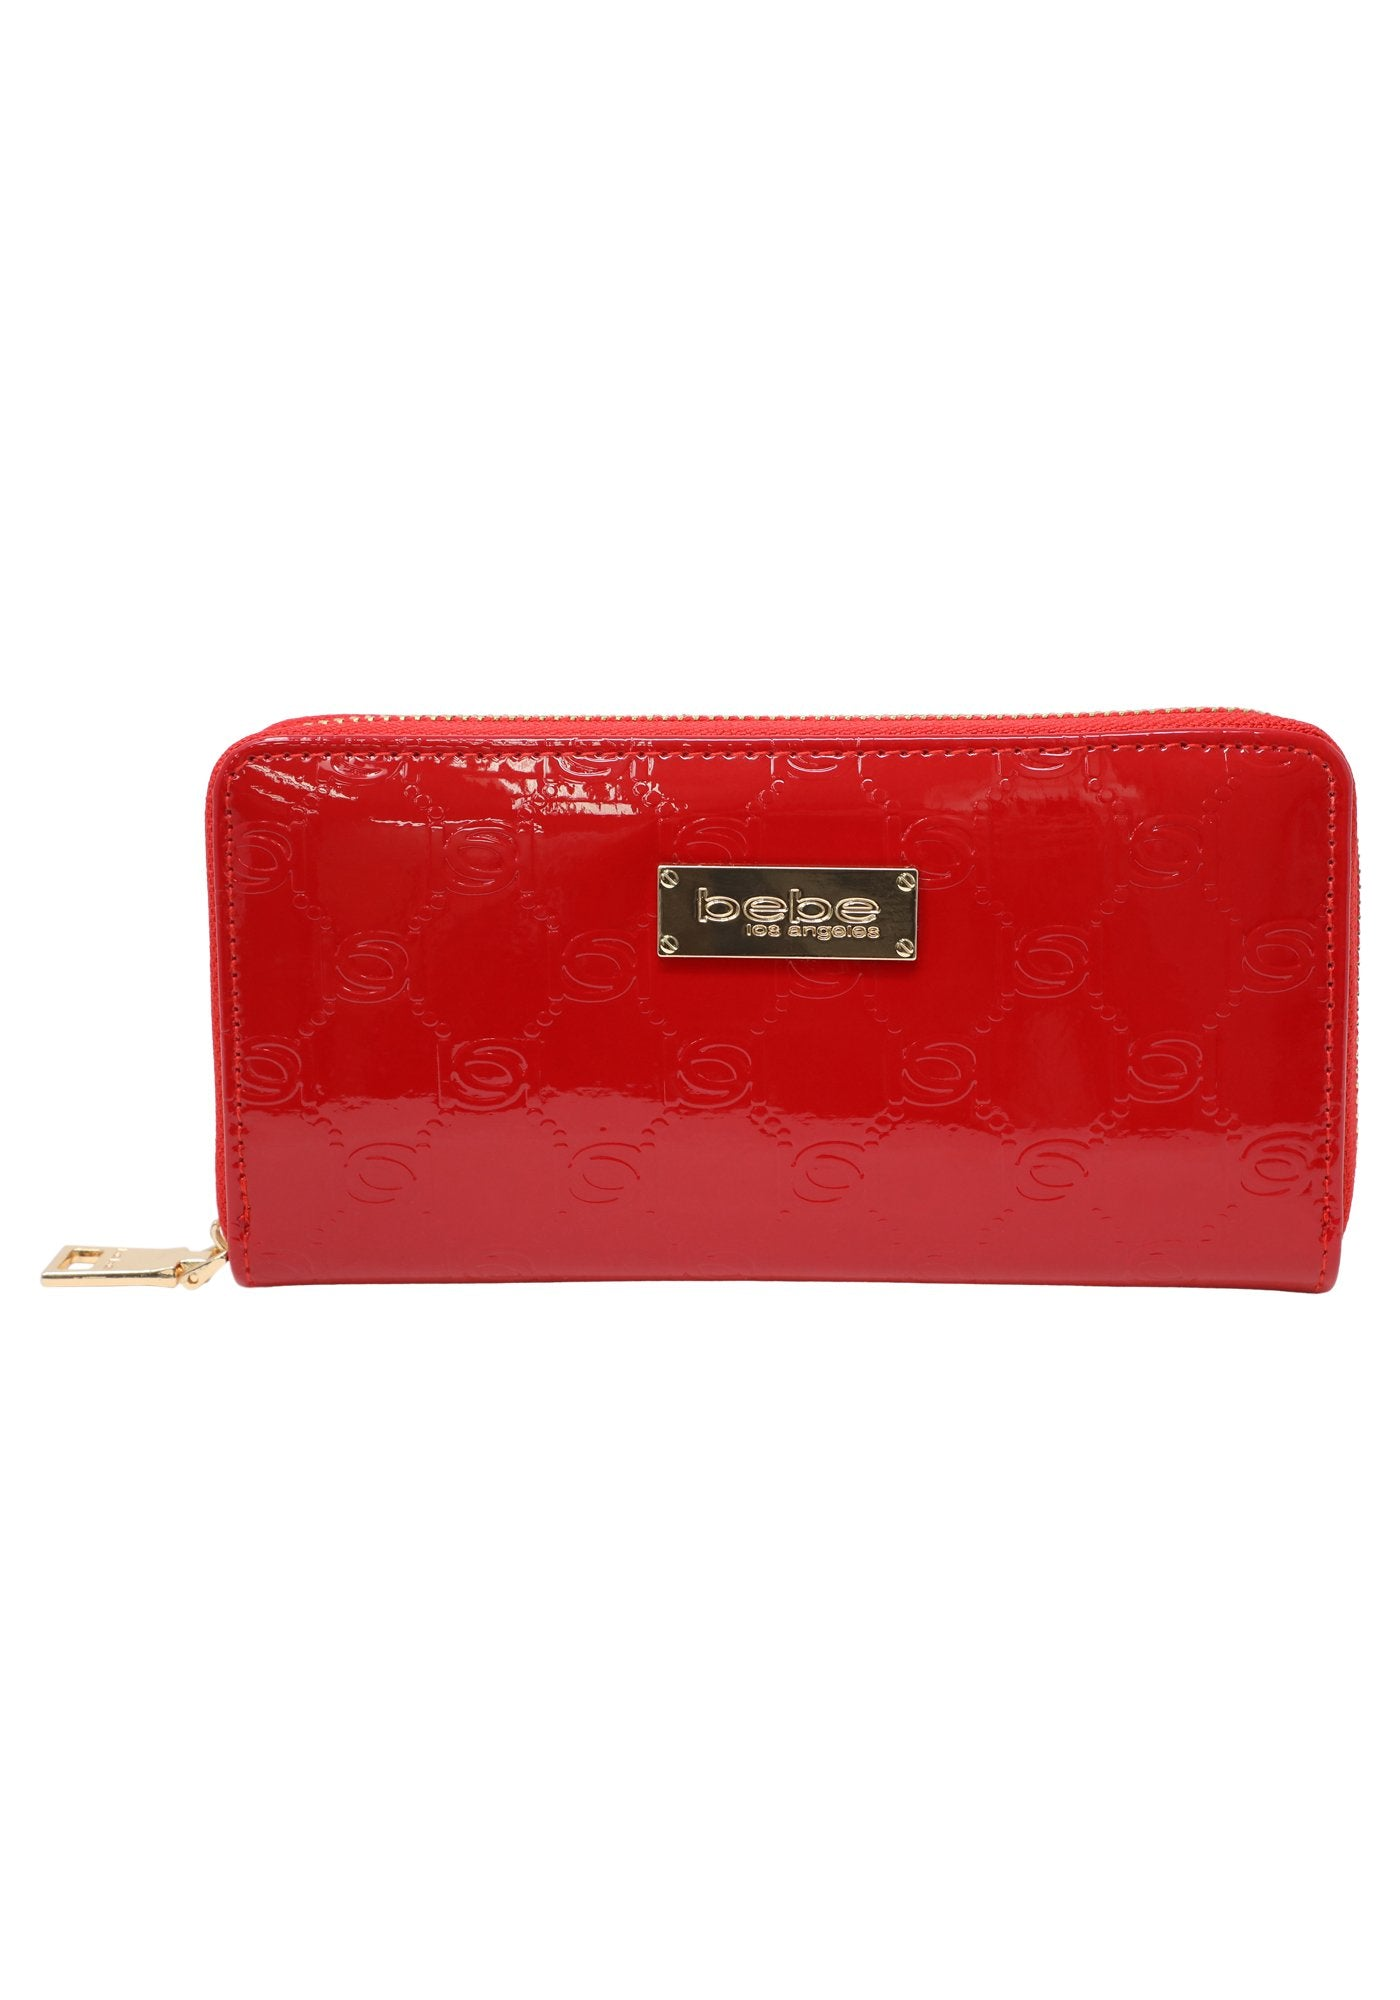 Bebe Women's Dana Patent Wallet, Size Mini in Red